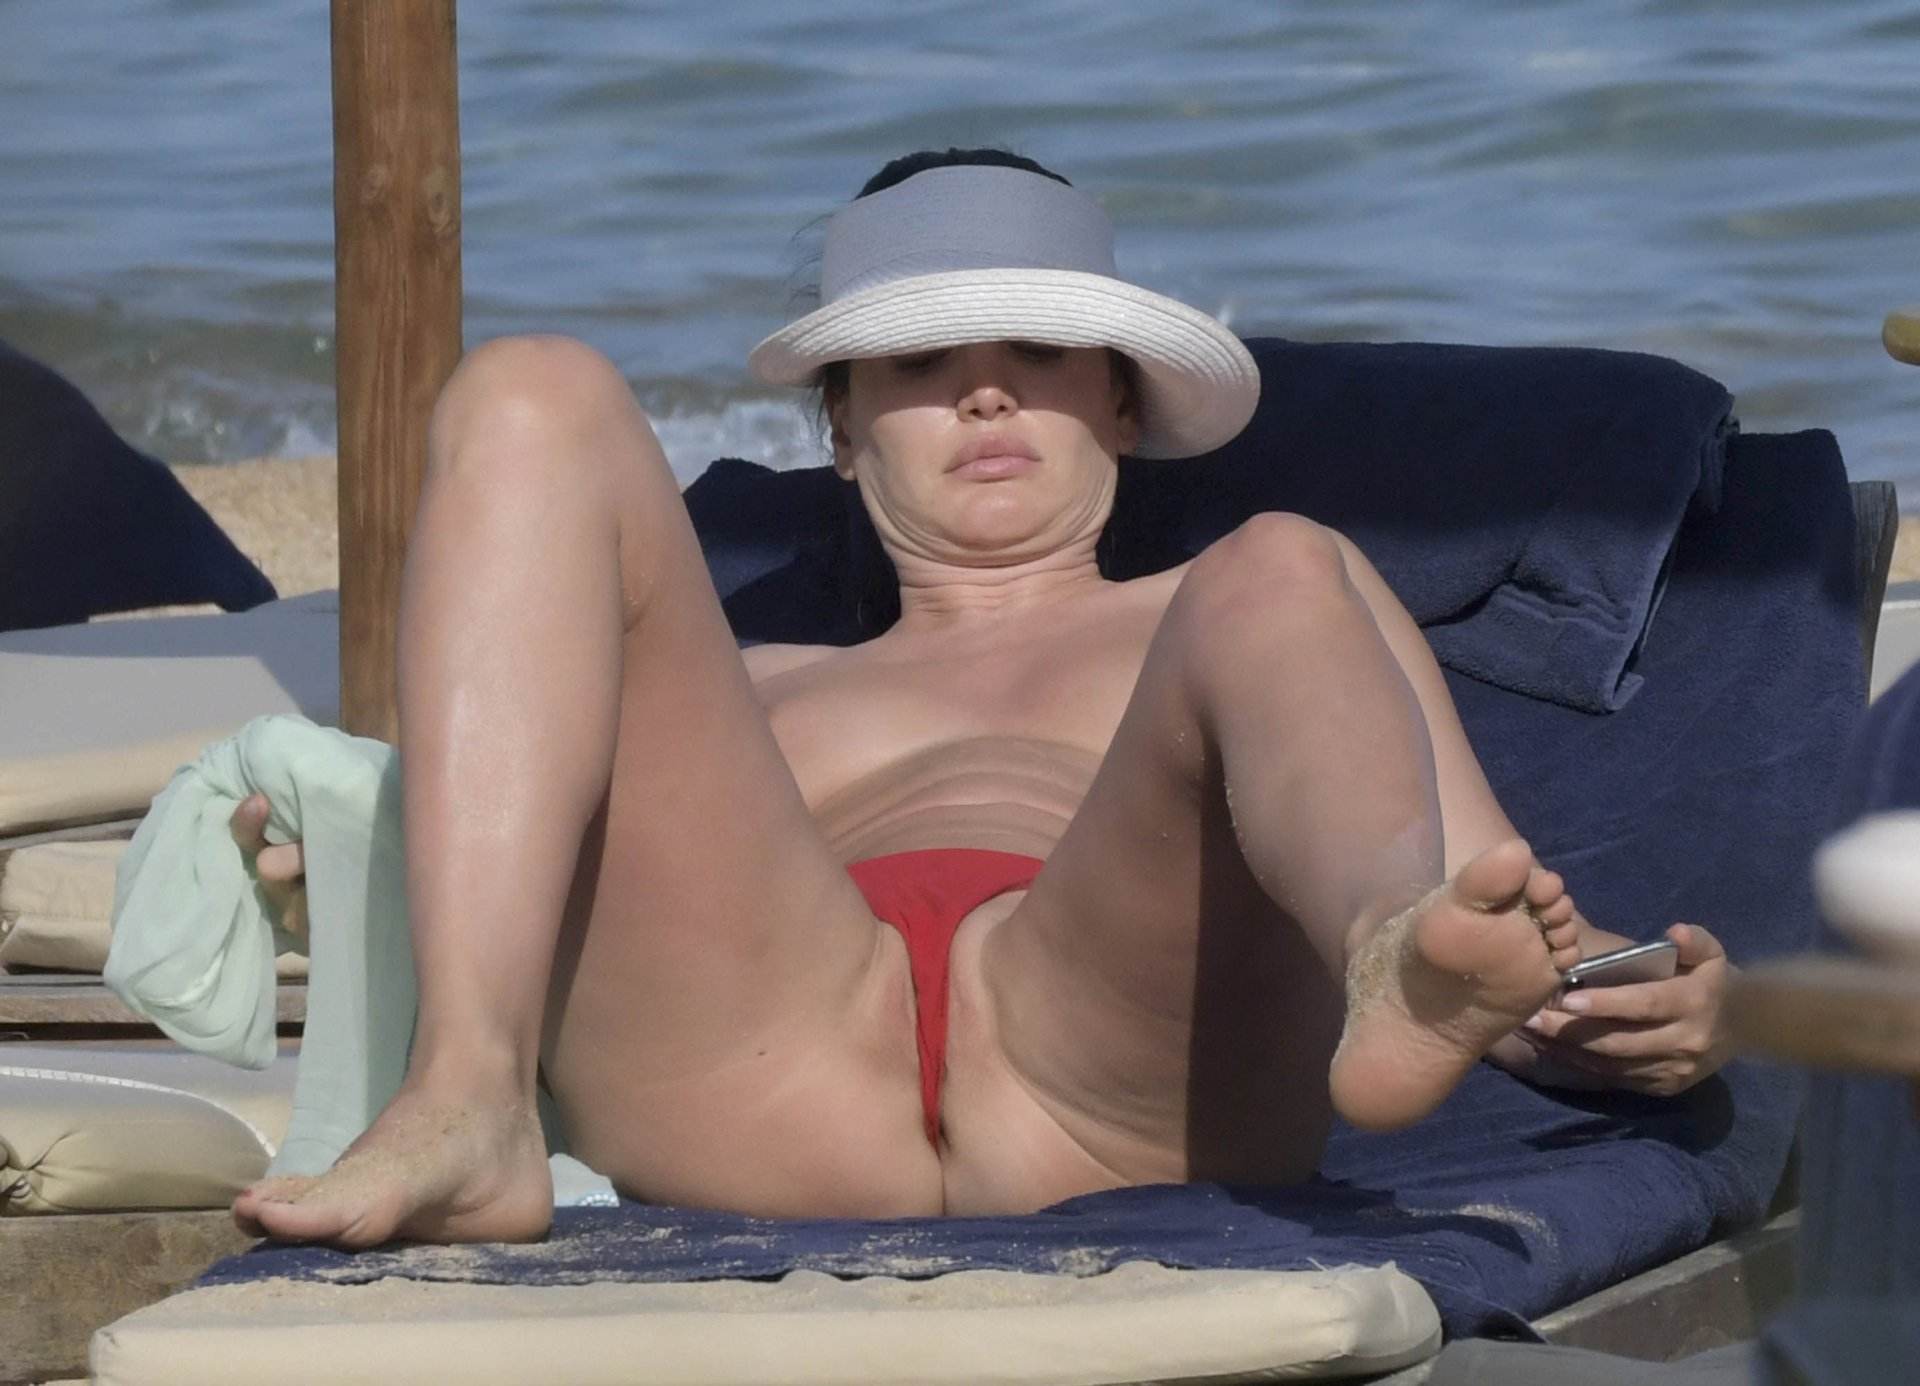 Bleona Qereti Topless on Beach in Italy 17